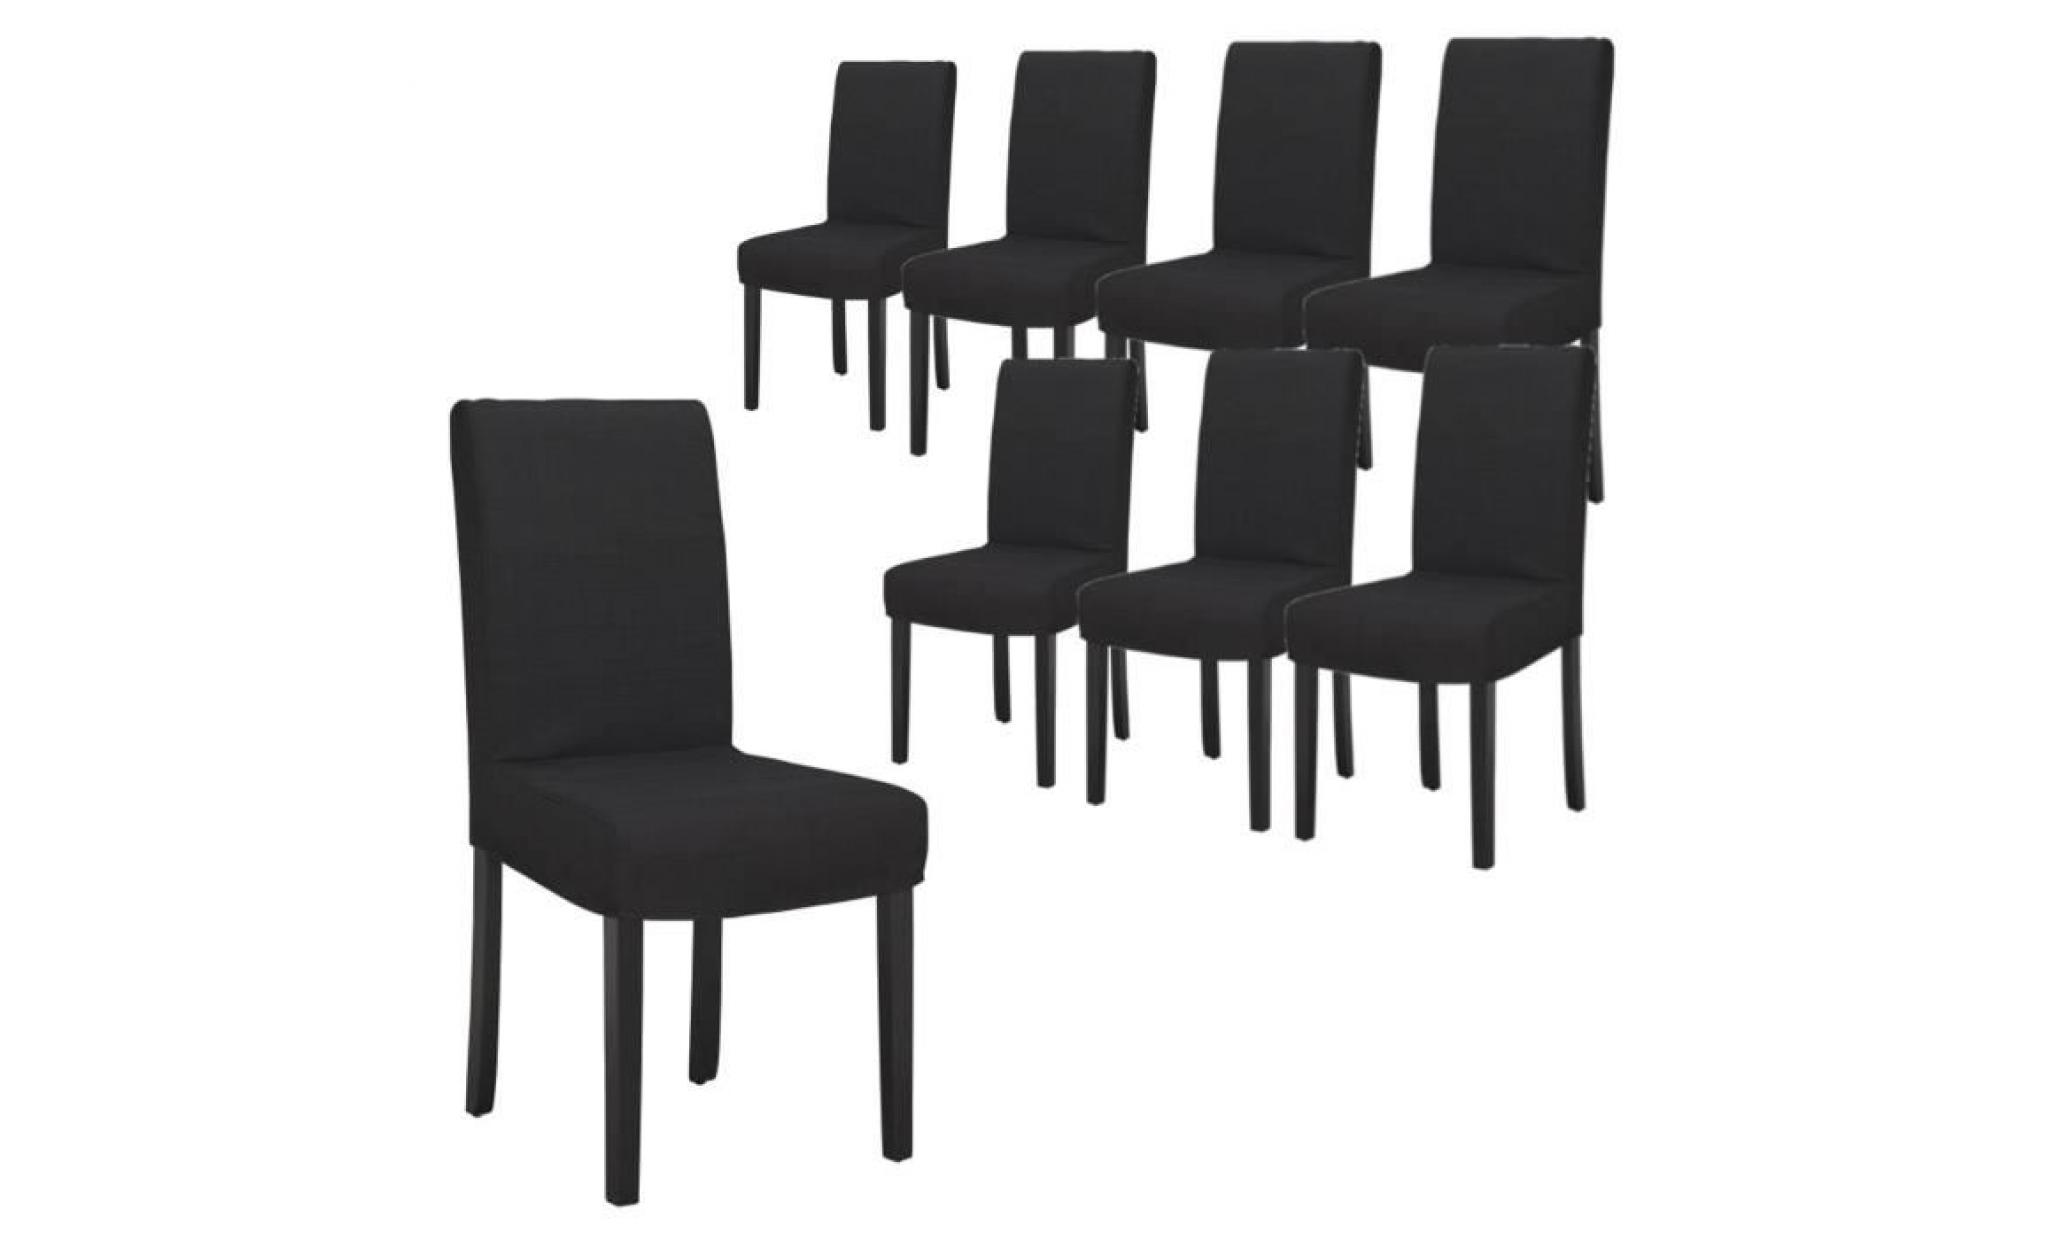 Strip lot de 8 chaises de salle manger d houssables for Lot de 8 chaise pas cher